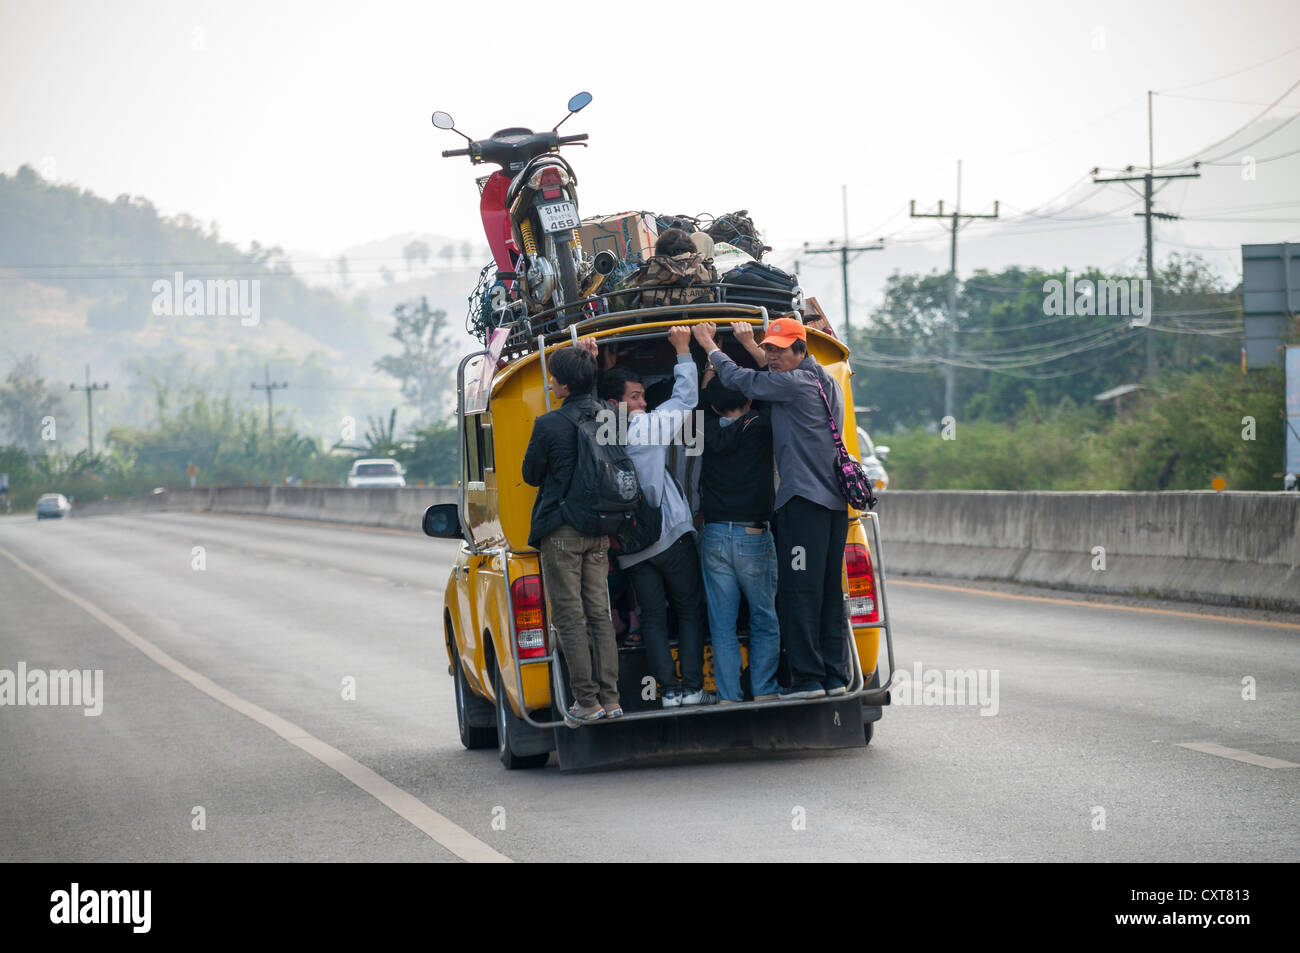 Overcrowded share taxi or Songthaew on a road, a motor bike loaded on the roof, northern Thailand, Thailand, Asia - Stock Image